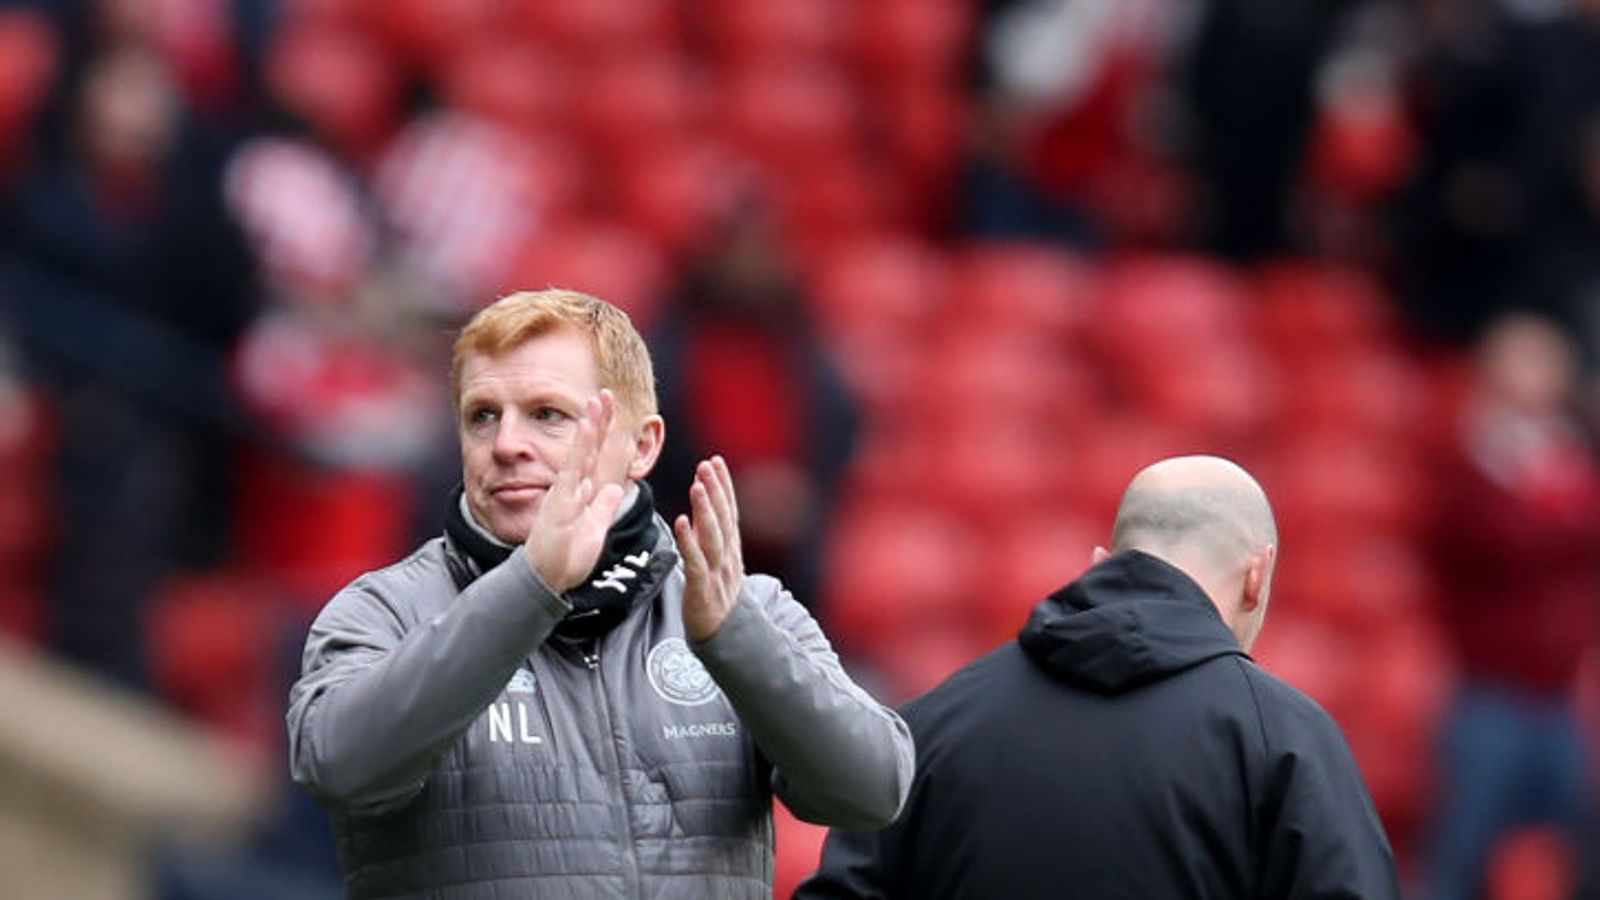 Neil Lennon: Celtic calm and know what's at stake